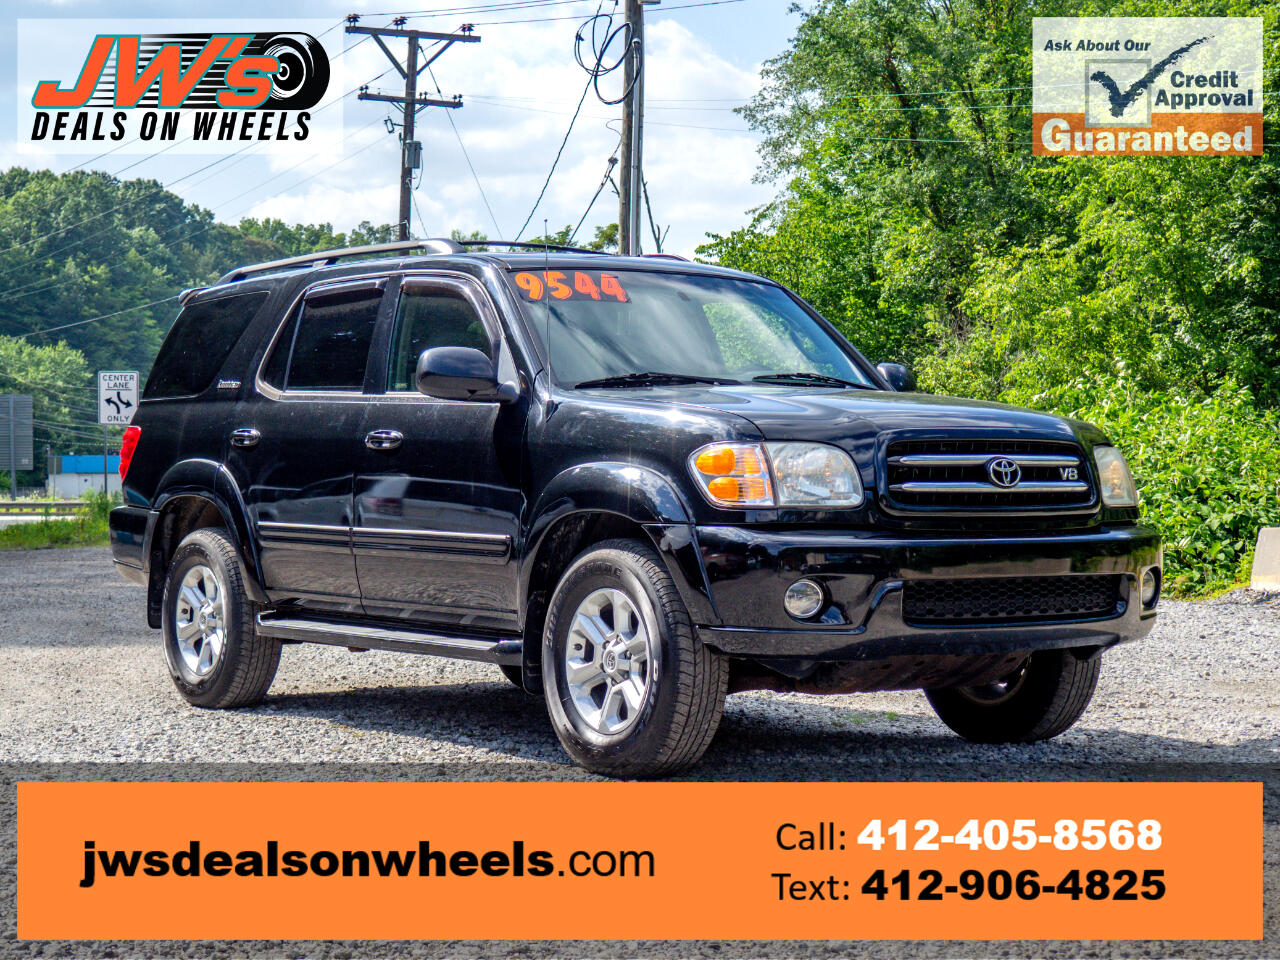 Toyota Sequoia 4dr Limited 4WD (Natl) 2004